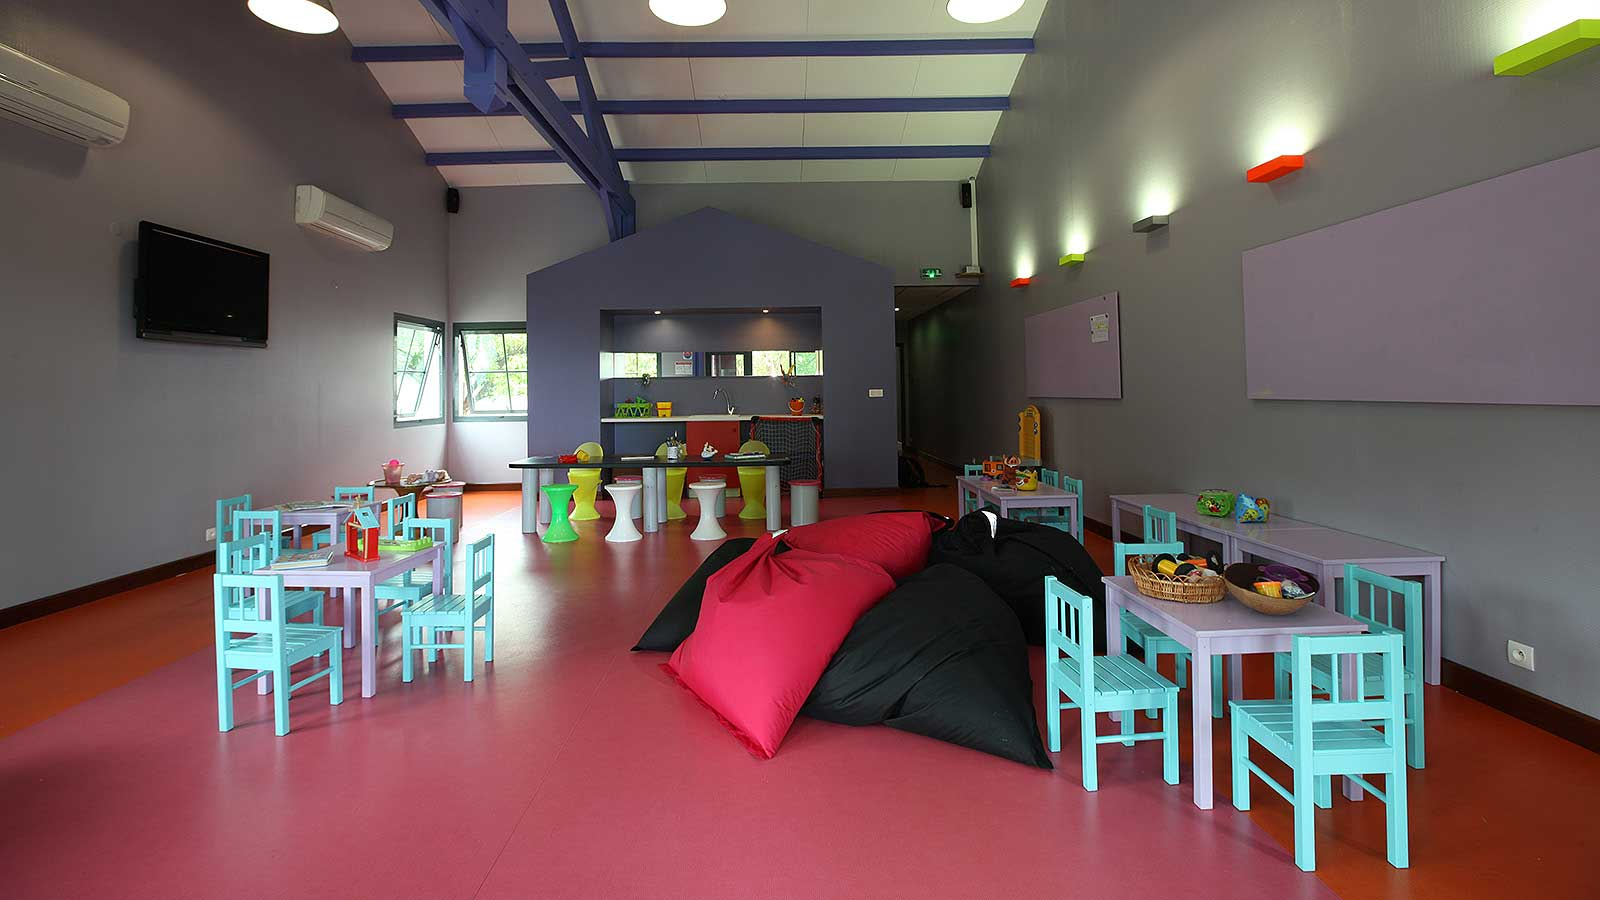 http://www.deshotelsetdesiles.com/hotel-vol-guadeloupe/photos/diapo-creole-club-enfant.jpg